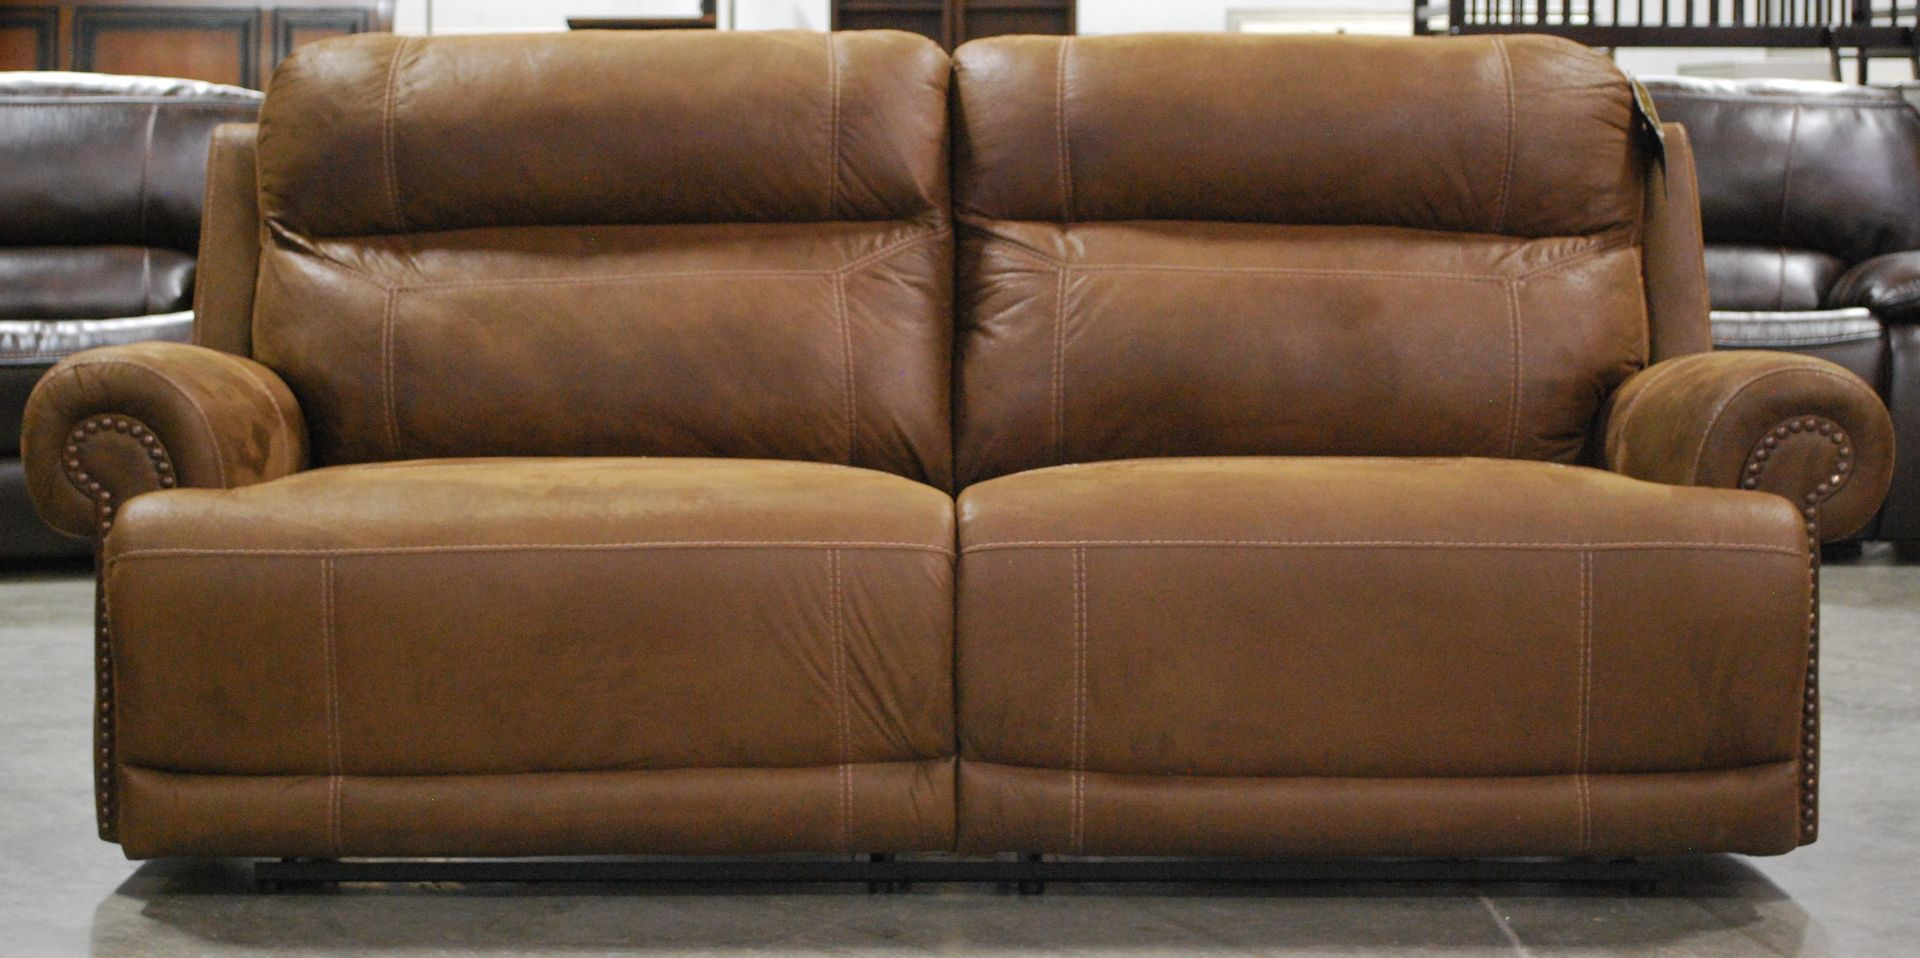 New Home Furniture At Wholesale Furniture Prices Furniture